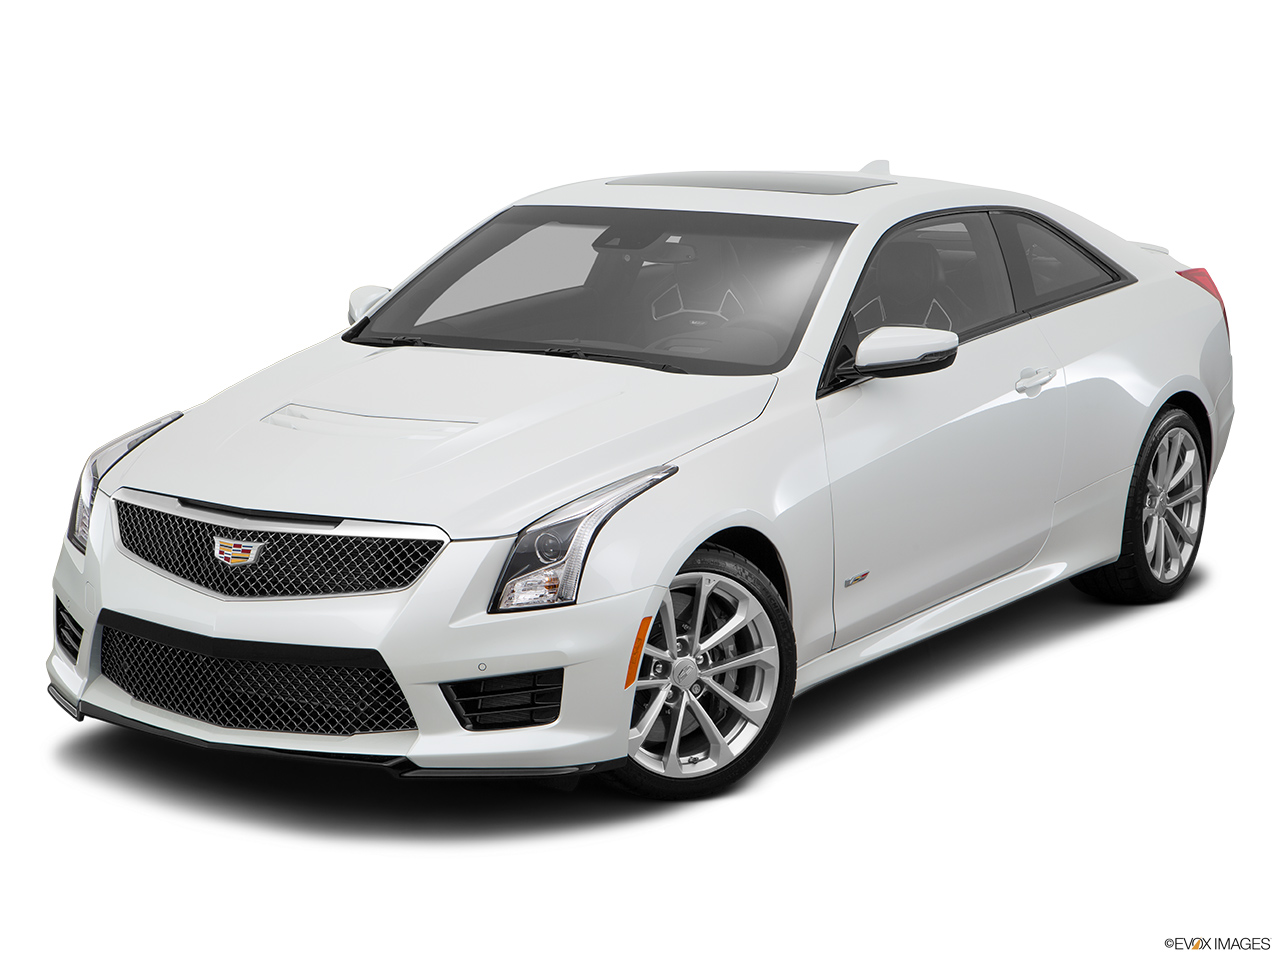 2017 cadillac ats v coupe prices in uae gulf specs reviews for dubai abu dhabi and sharjah. Black Bedroom Furniture Sets. Home Design Ideas